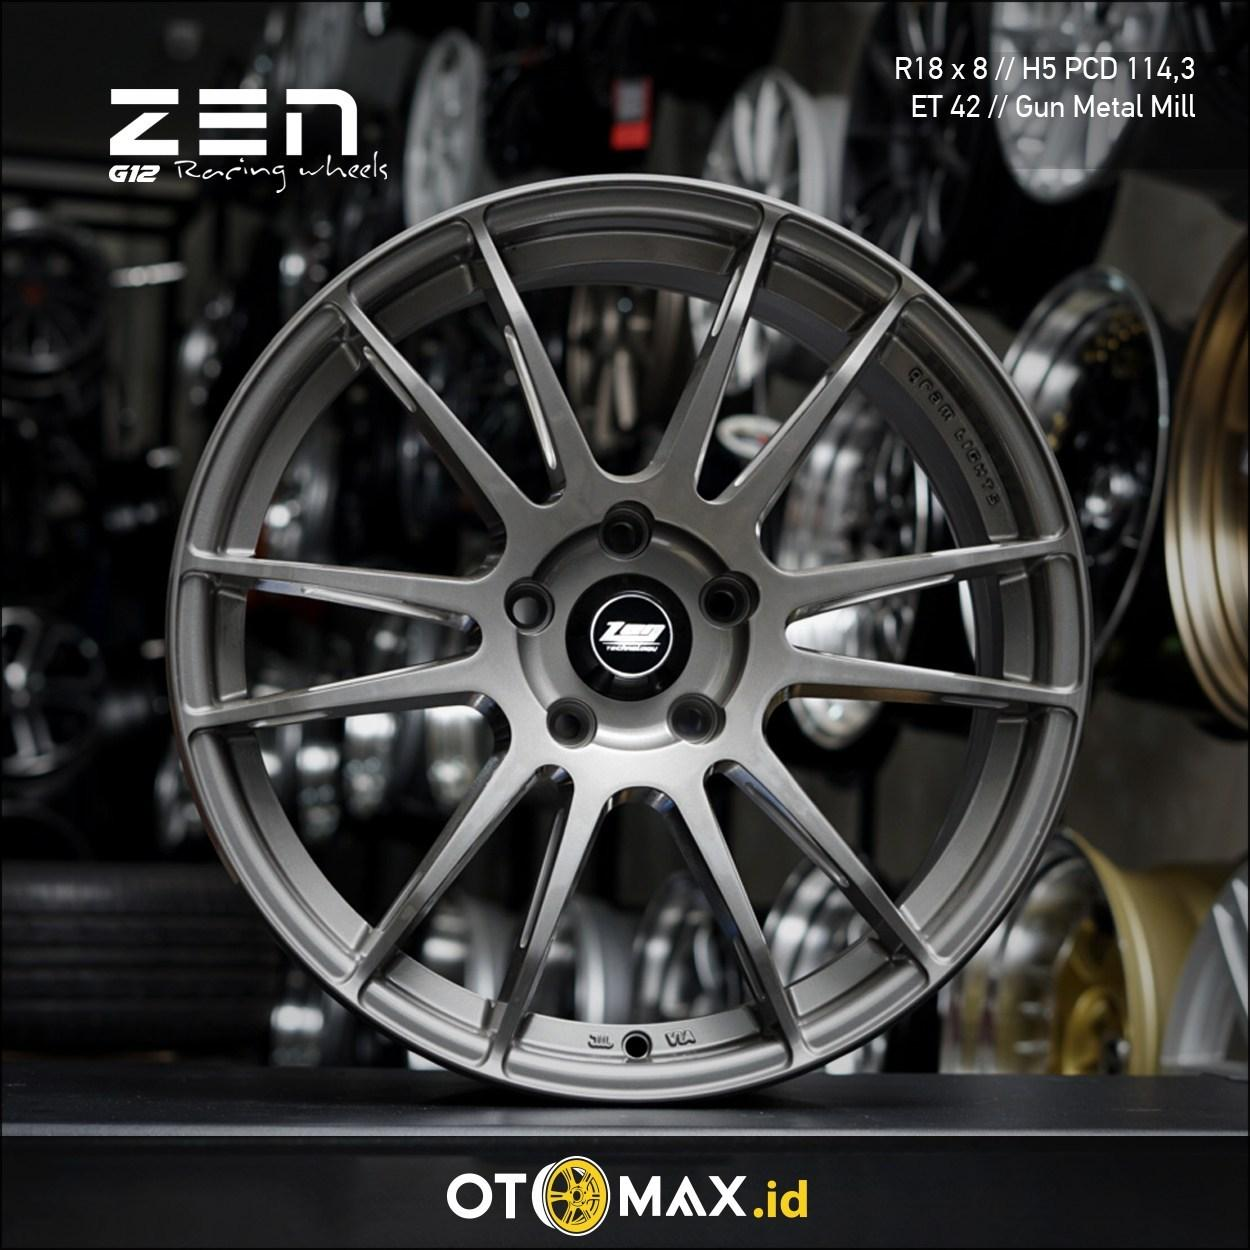 Velg Mobil Zen G12 Ring 18 Gun Metal Mill